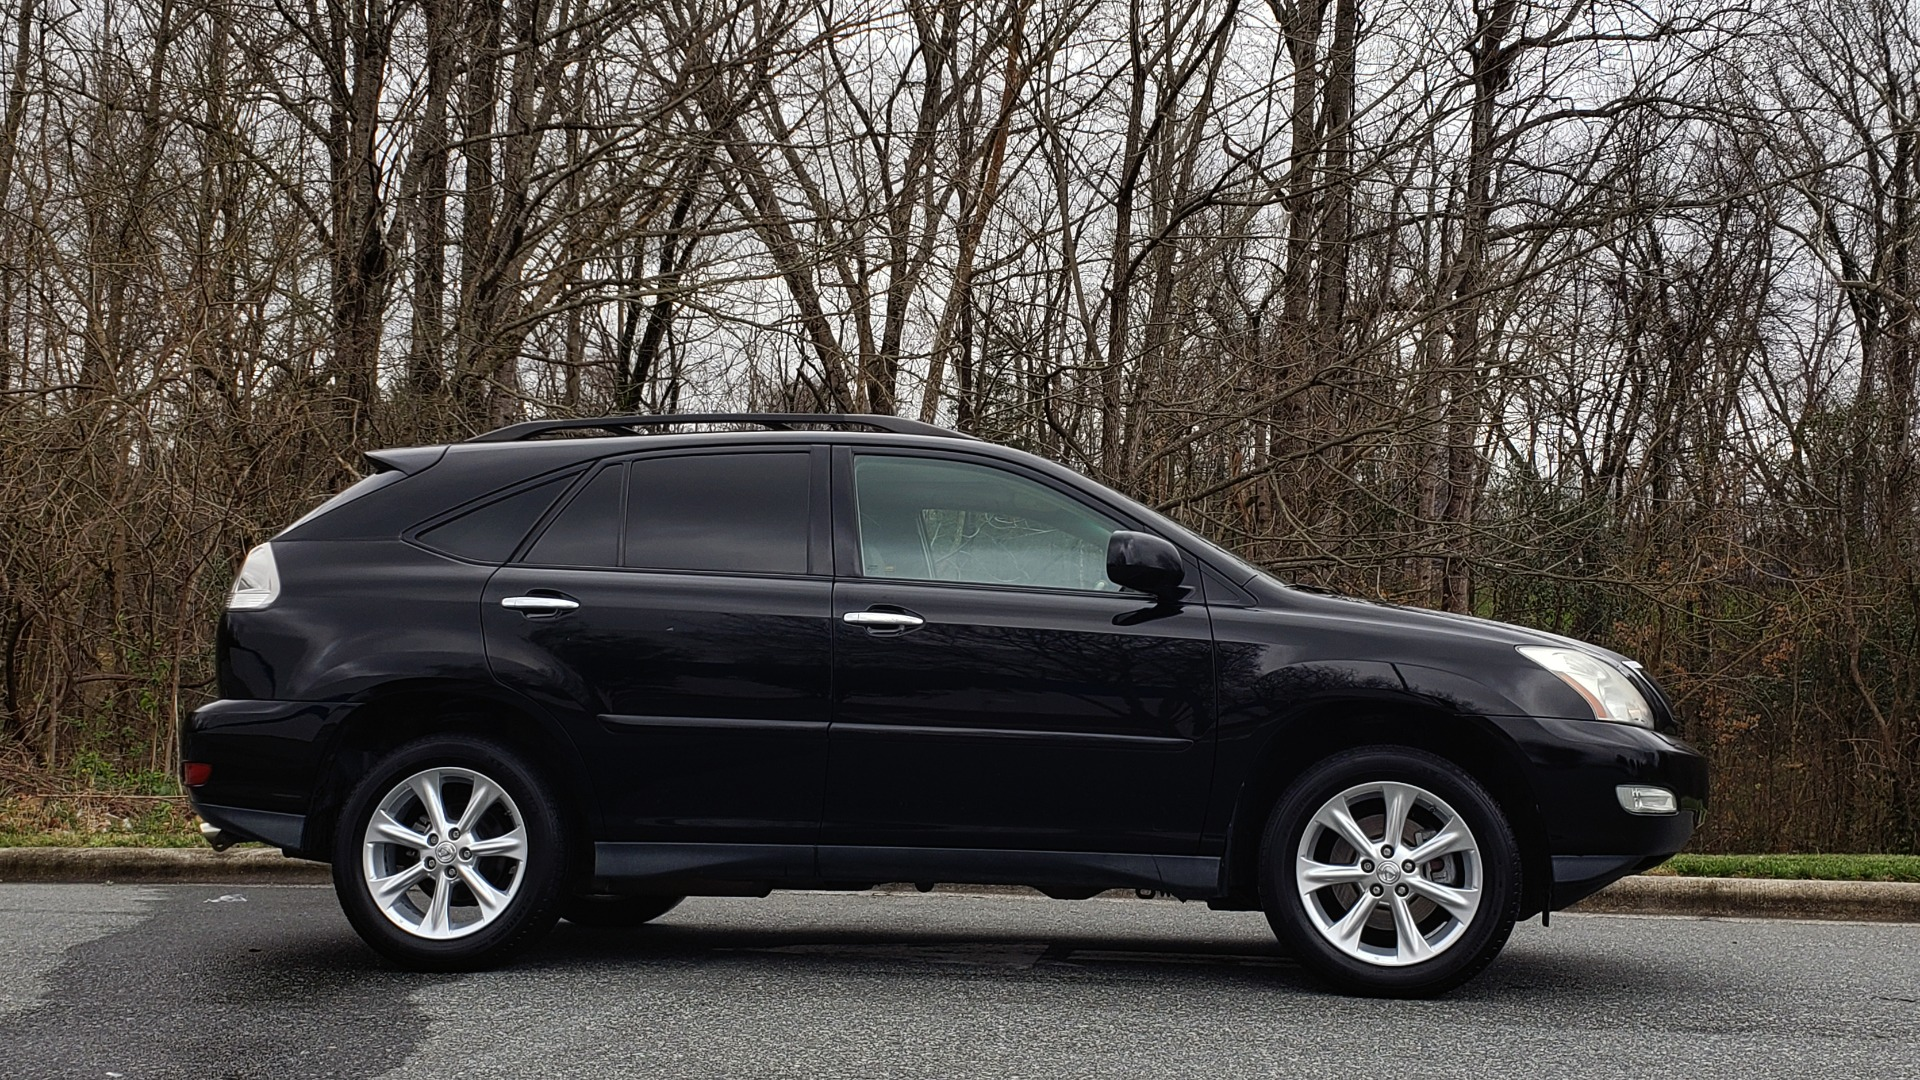 Used 2008 Lexus RX 350 LUXURY EDITION / NAV / SUNROOF / REARVIEW for sale Sold at Formula Imports in Charlotte NC 28227 5